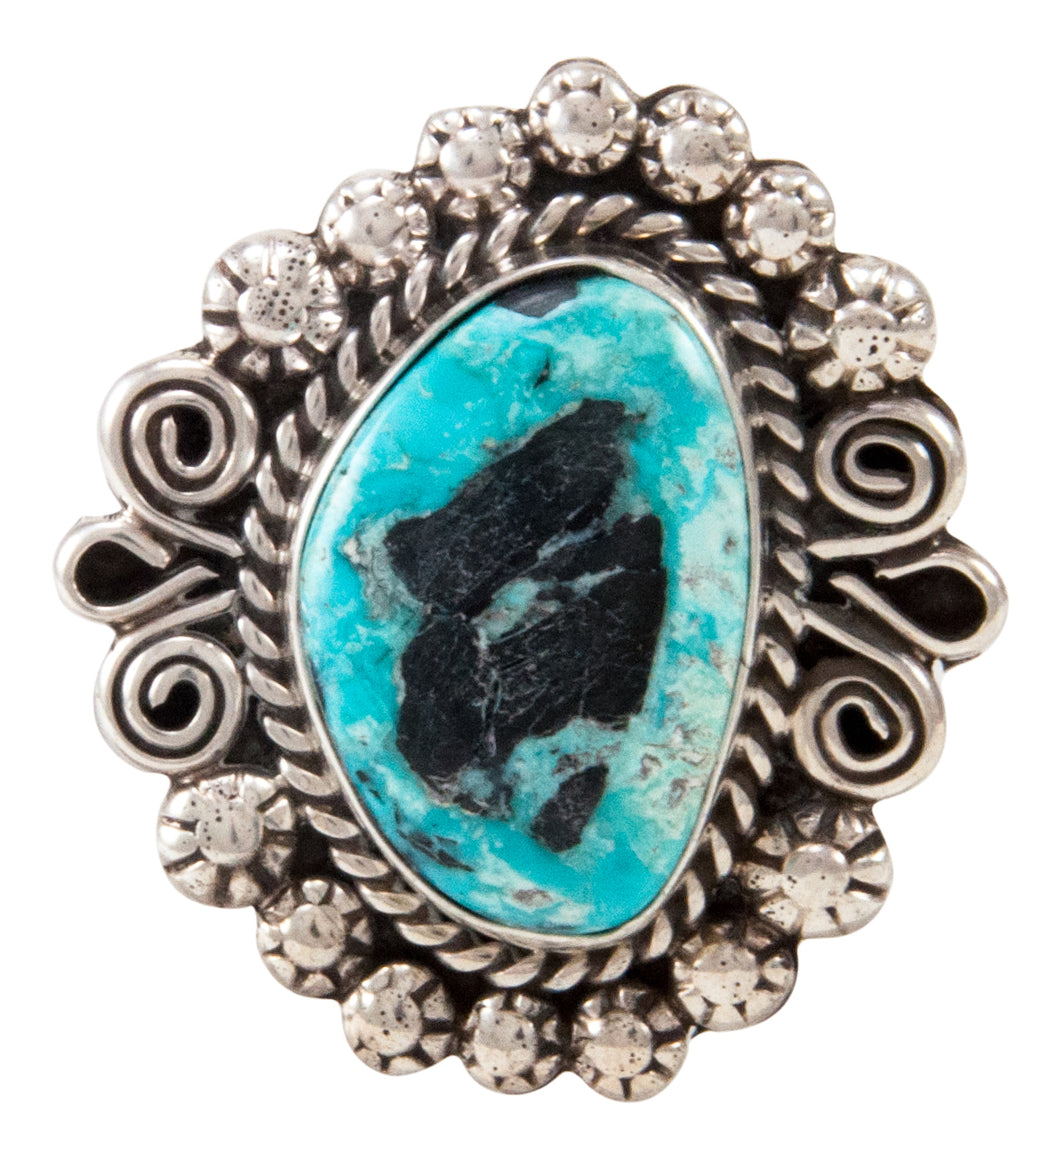 Navajo Native American Blue Moon Turquoise Ring Size 8 3/4 by Johnson SKU233010